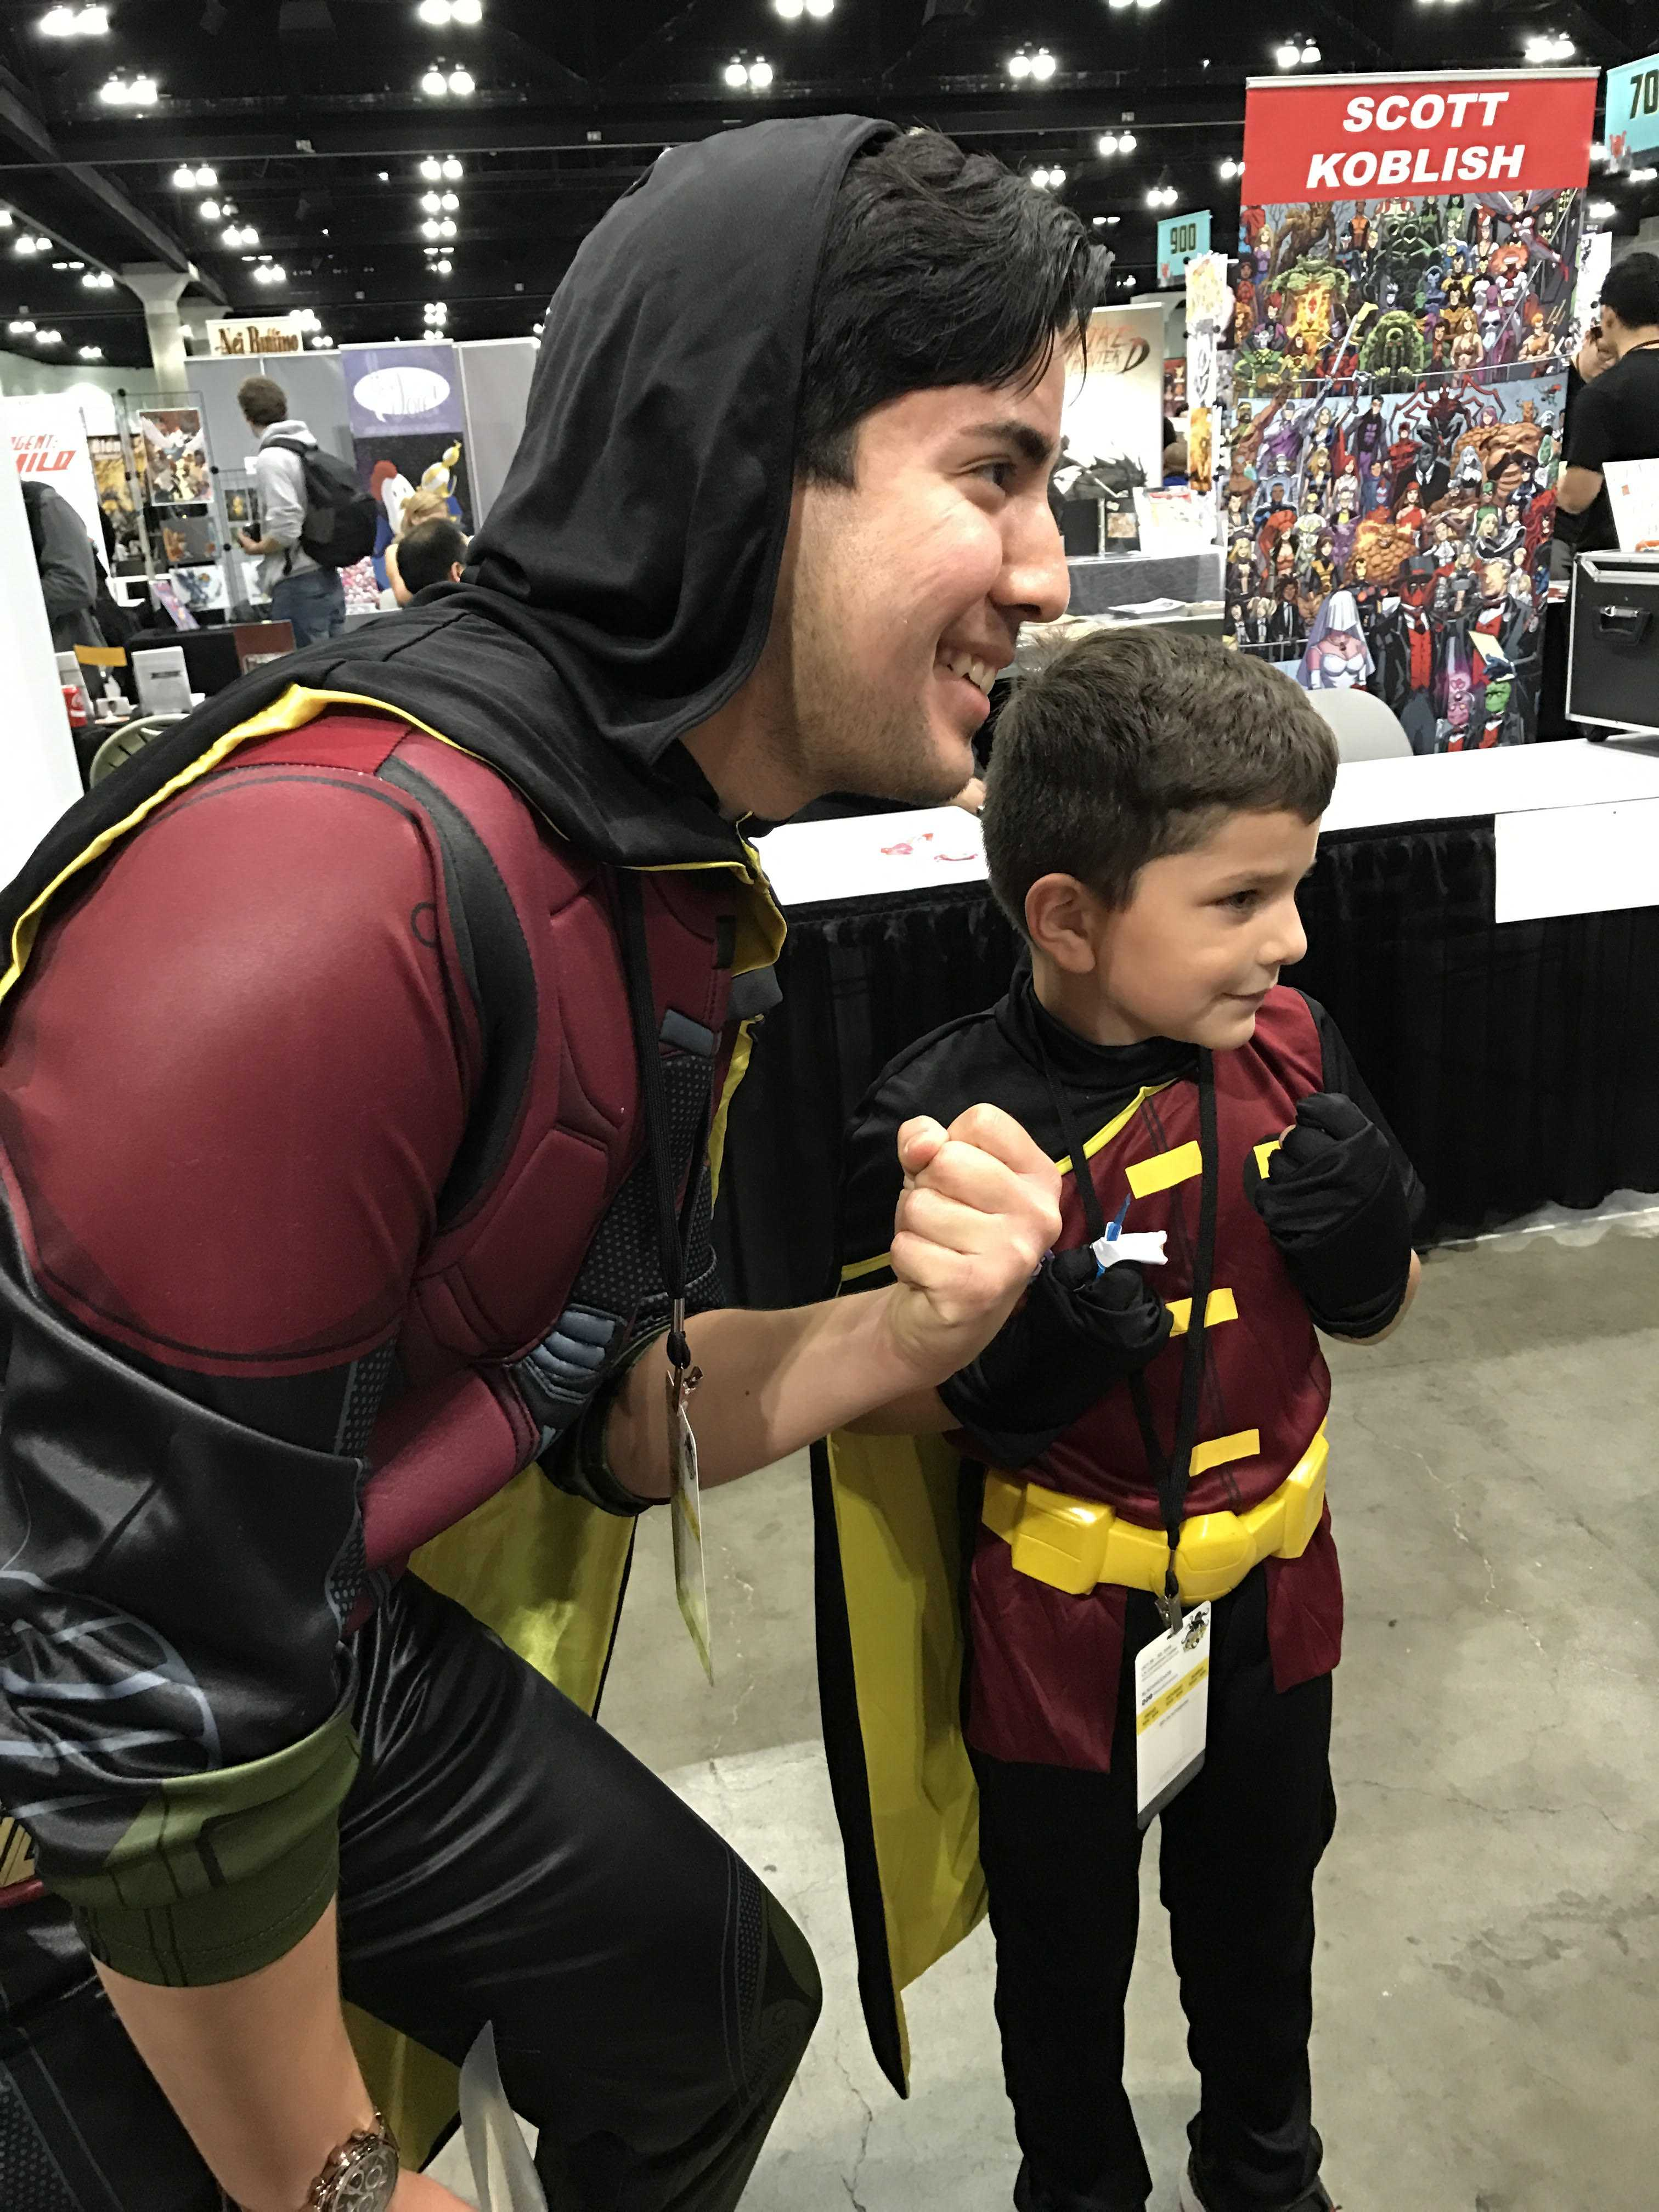 A man dressed as Robin poses with a young boy in the same costume